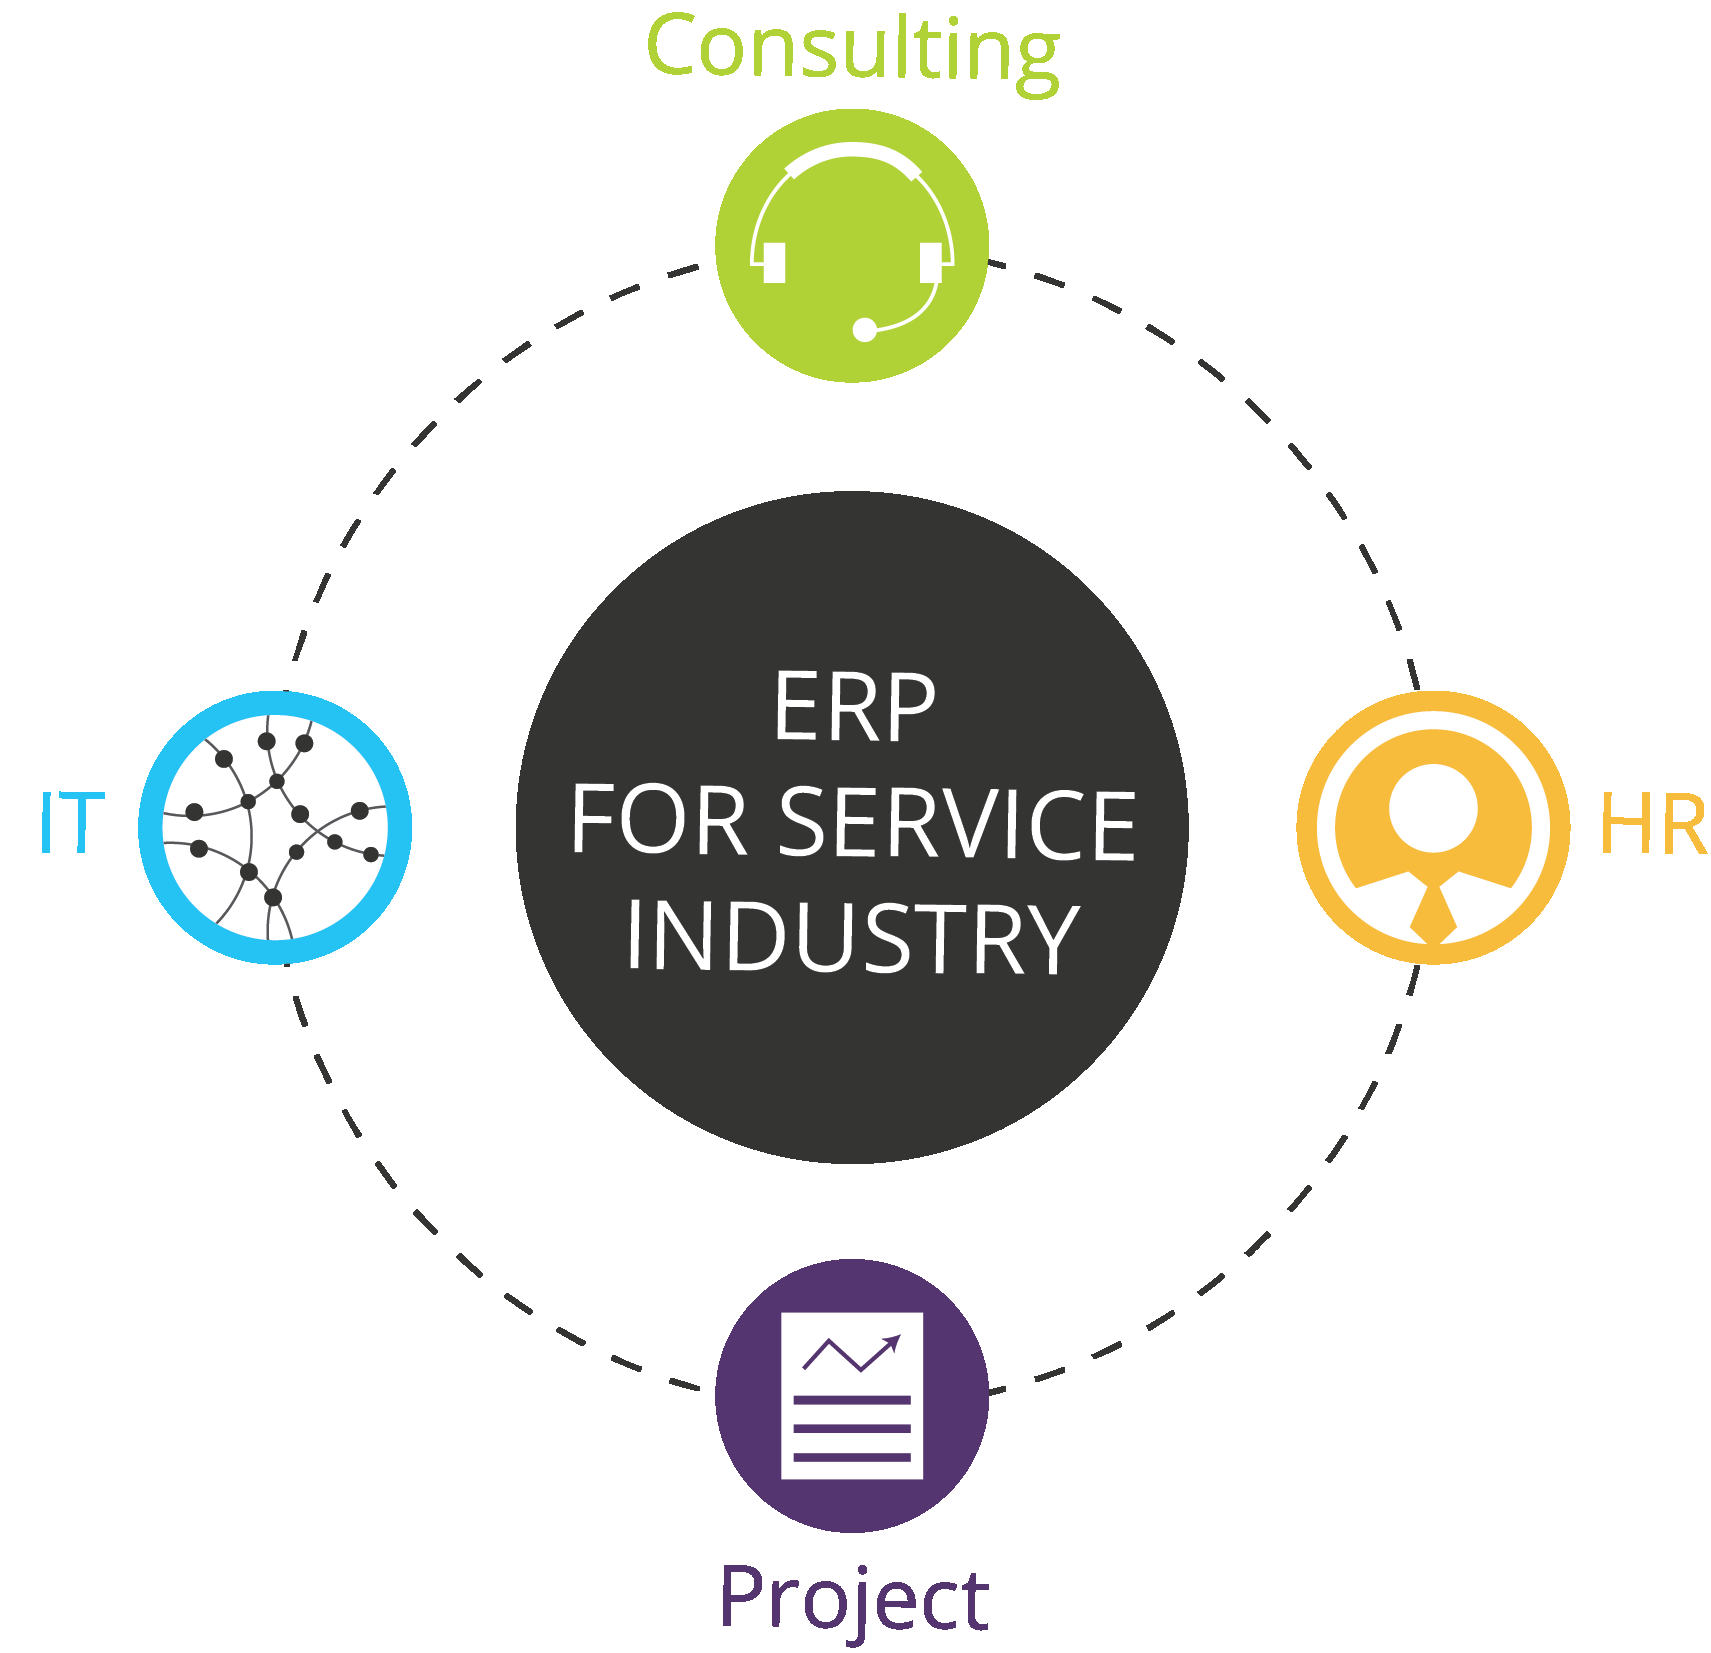 Erp for service industry 8211 it consulting project and hr industry is in real needs of right management the services albeit hr project it or any consulting business this software is actually an open source ccuart Images